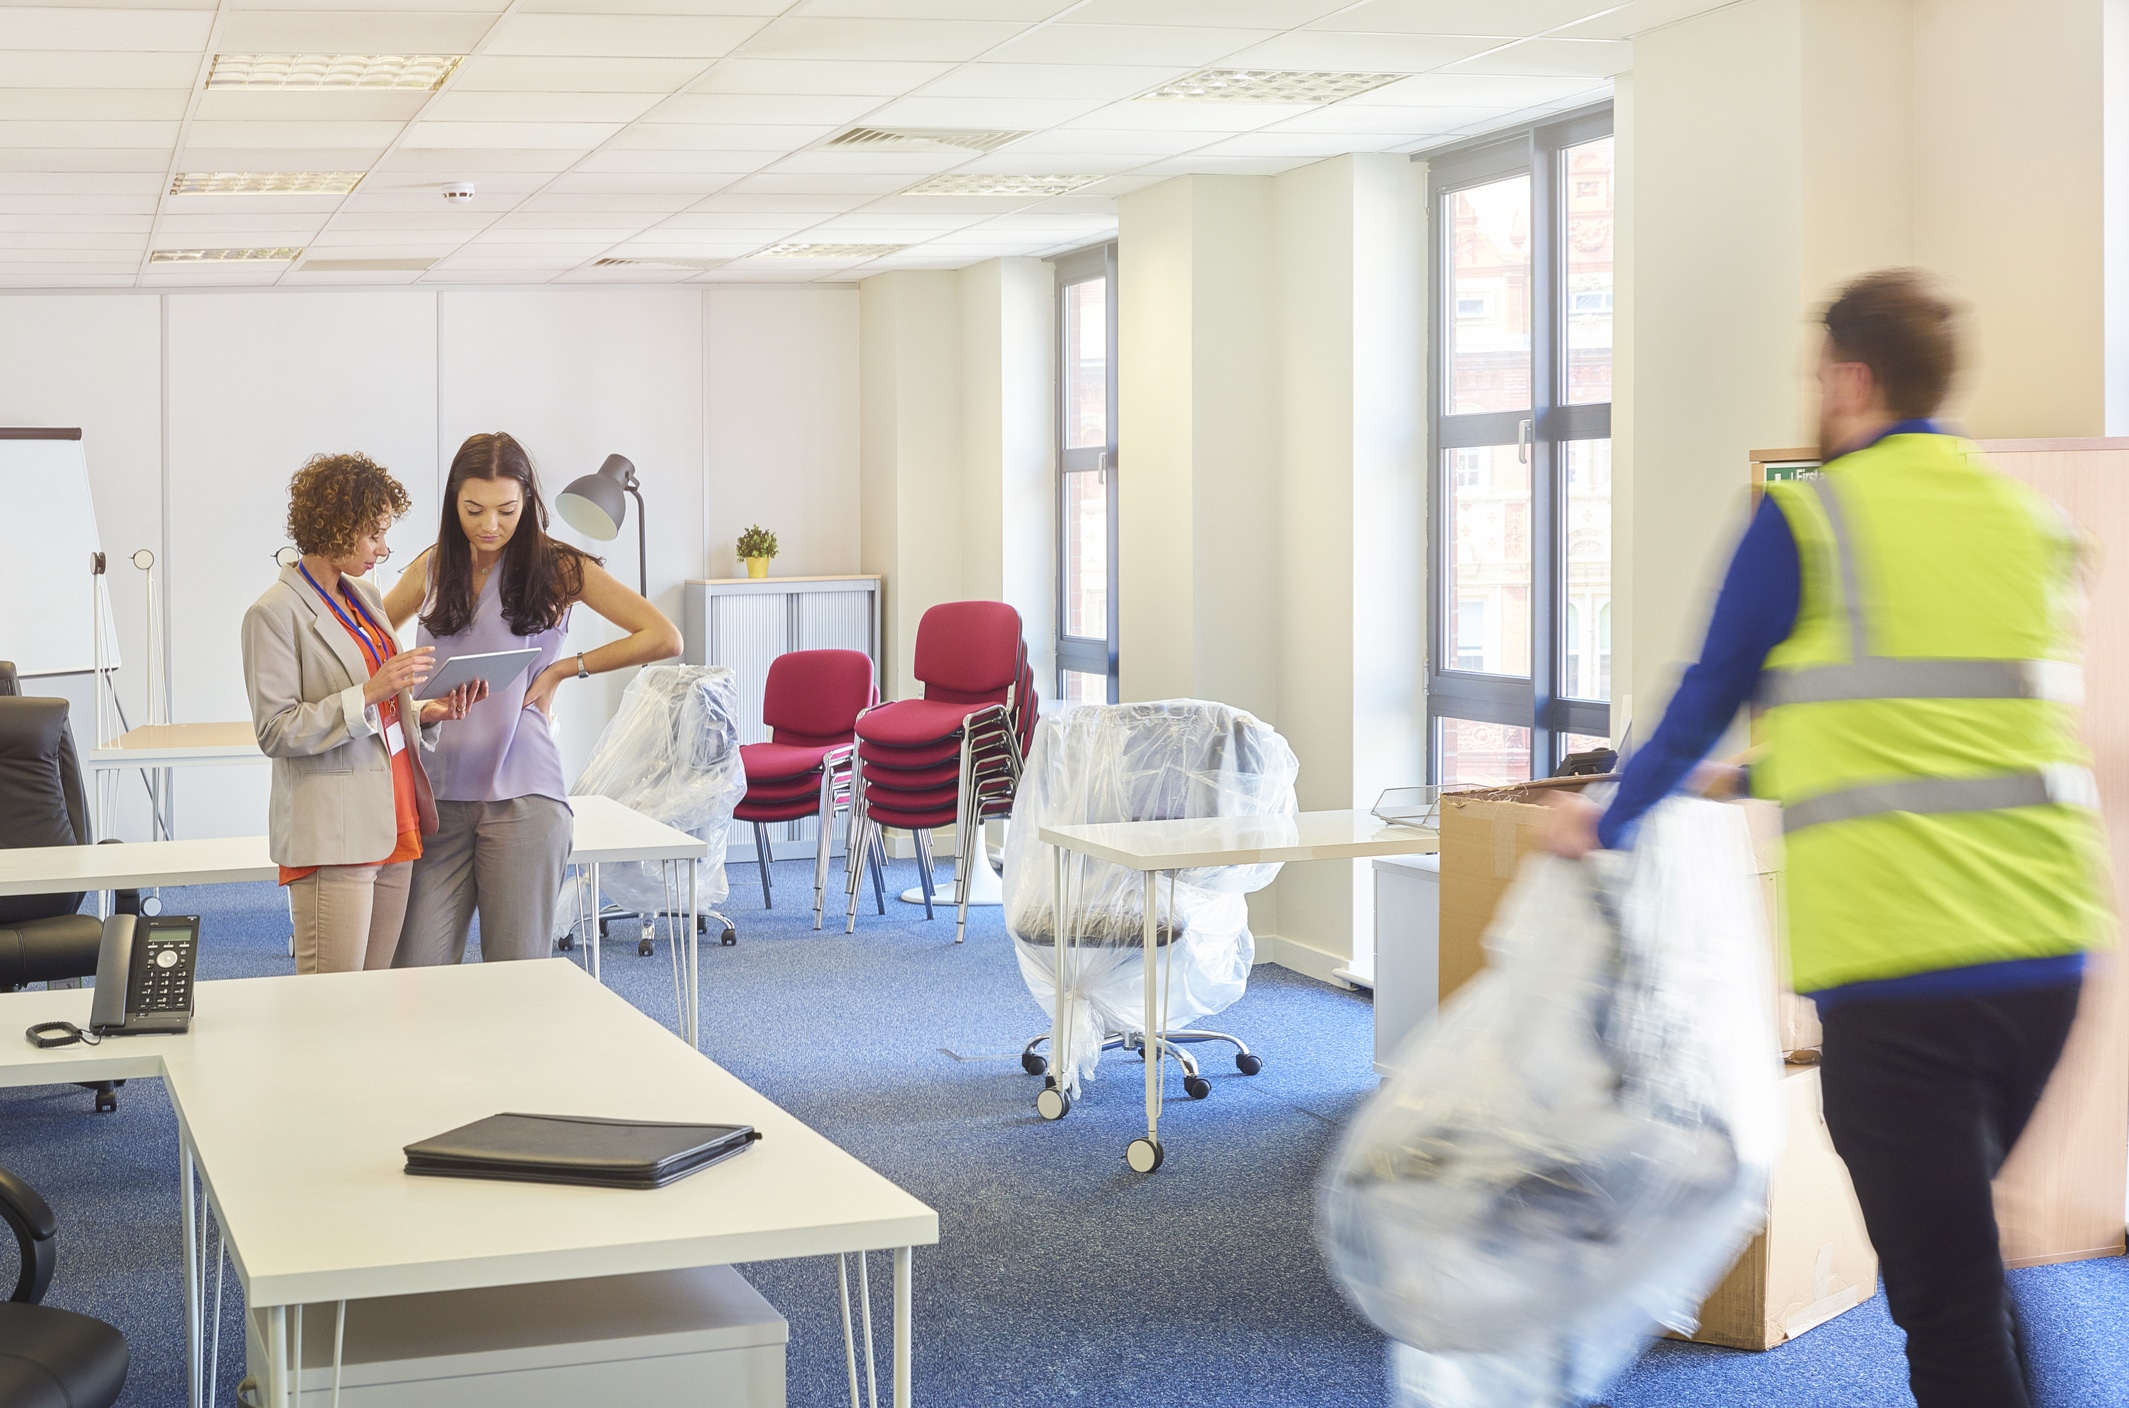 5 Things to consider when preparing for an office relocation